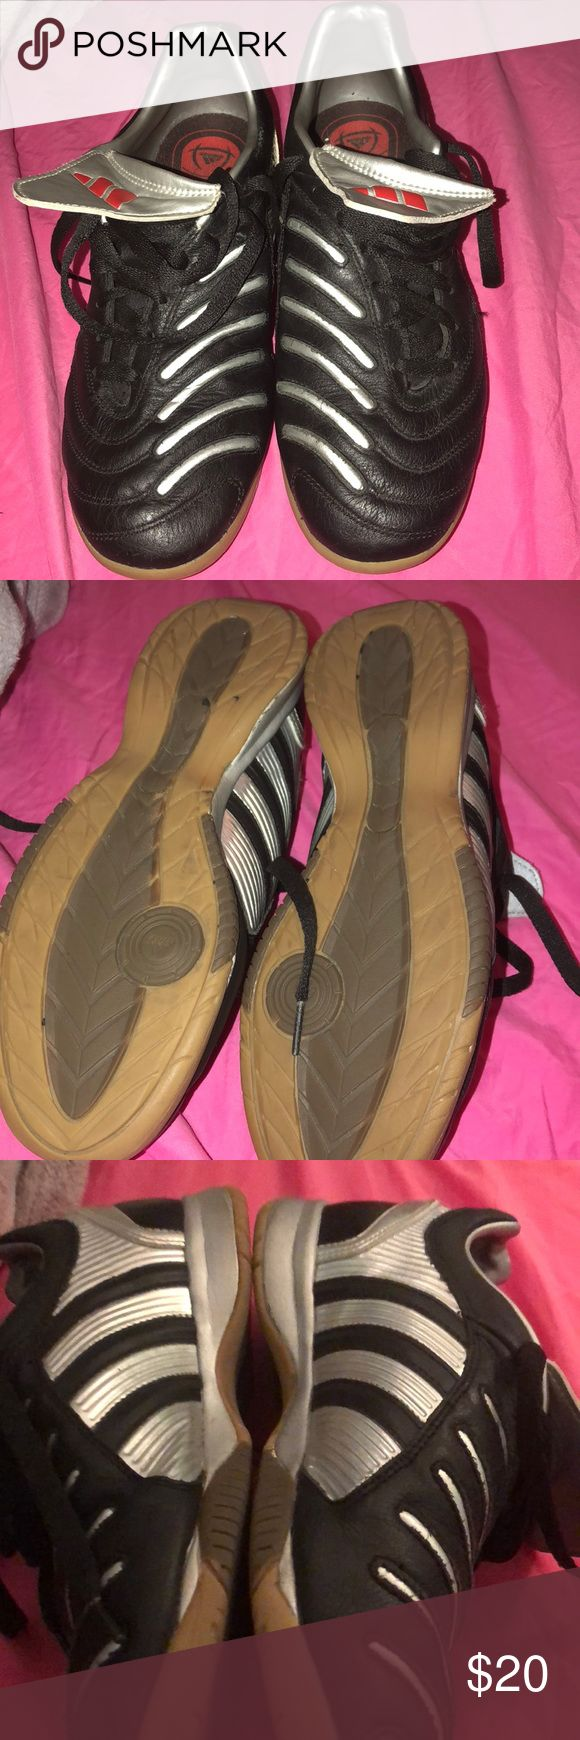 Adidas indoor soccer shoes worn once!!Size 8 women. AdiPREME. Silver and black.. make me an offer adidas Shoes Athletic Shoes